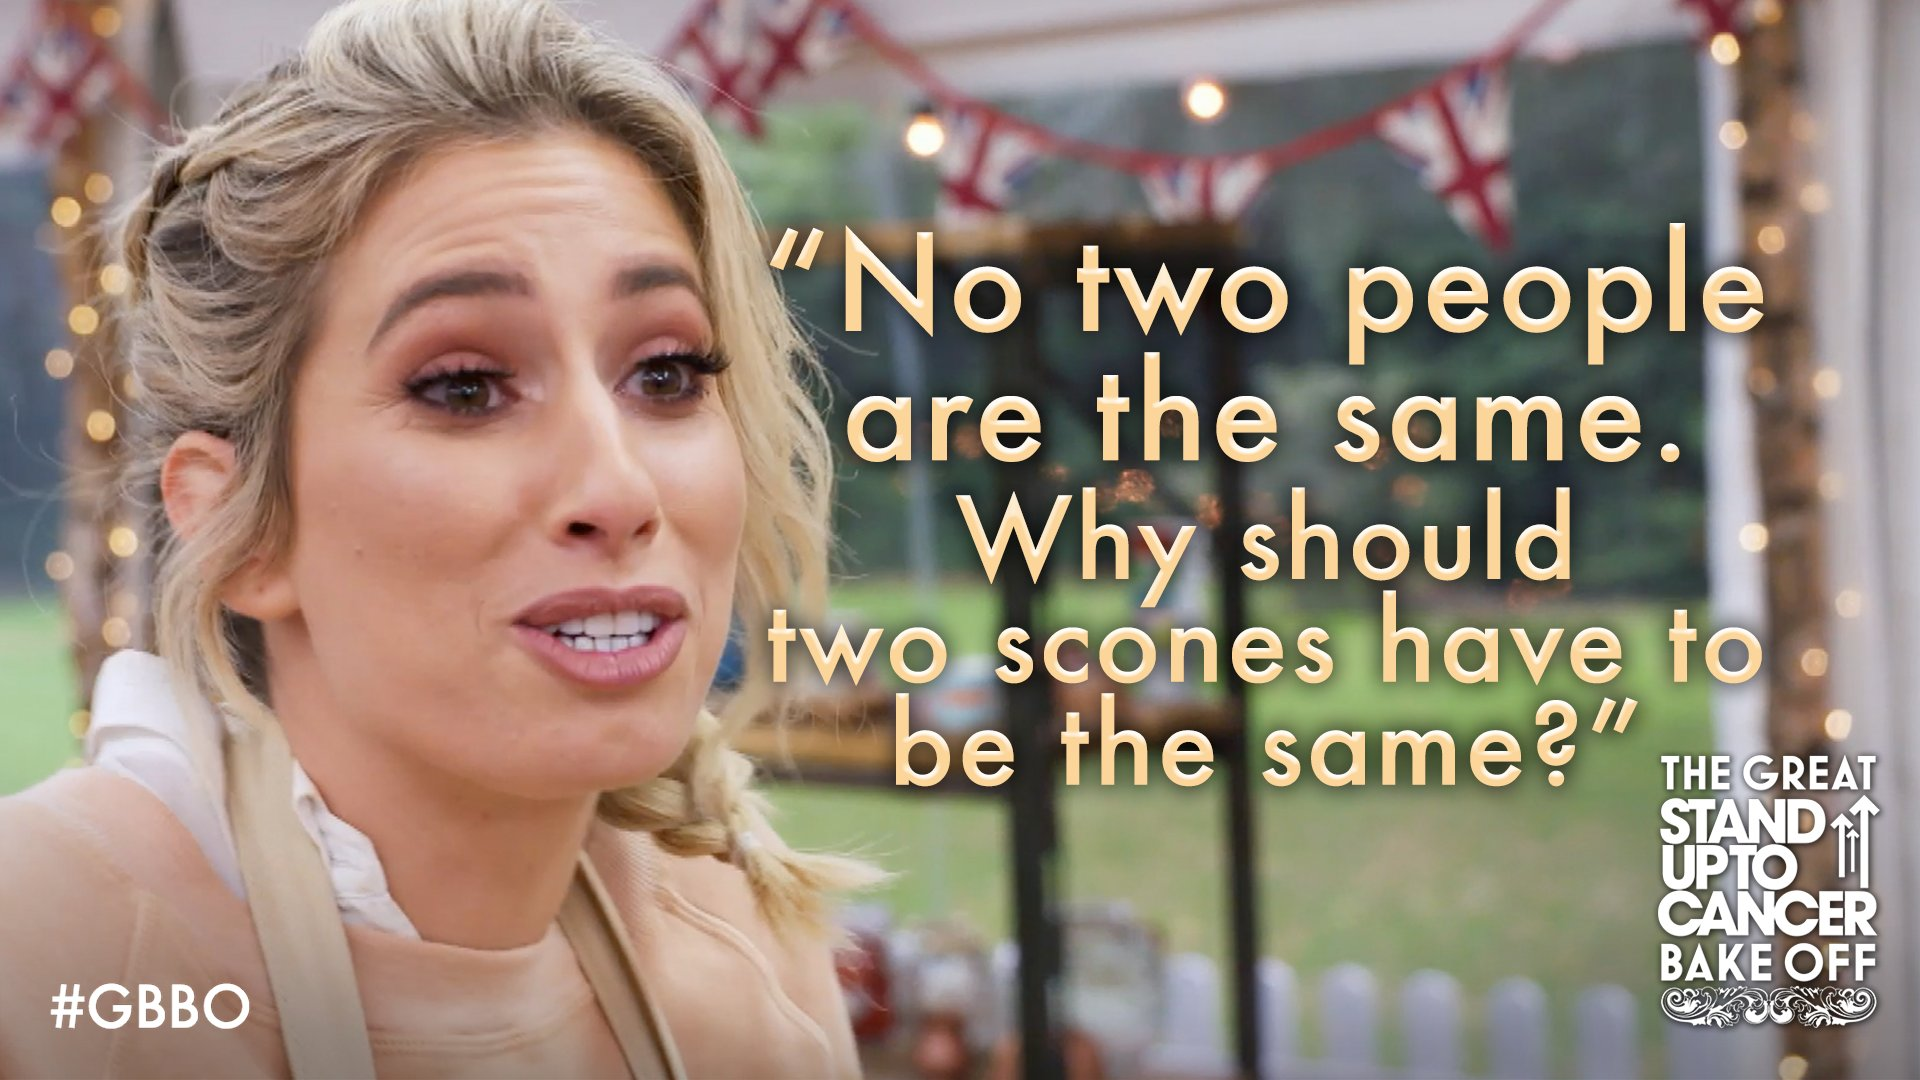 RT @BritishBakeOff: We like the thinking, @StaceySolomon! #GBBO https://t.co/VYaOeVfyvd